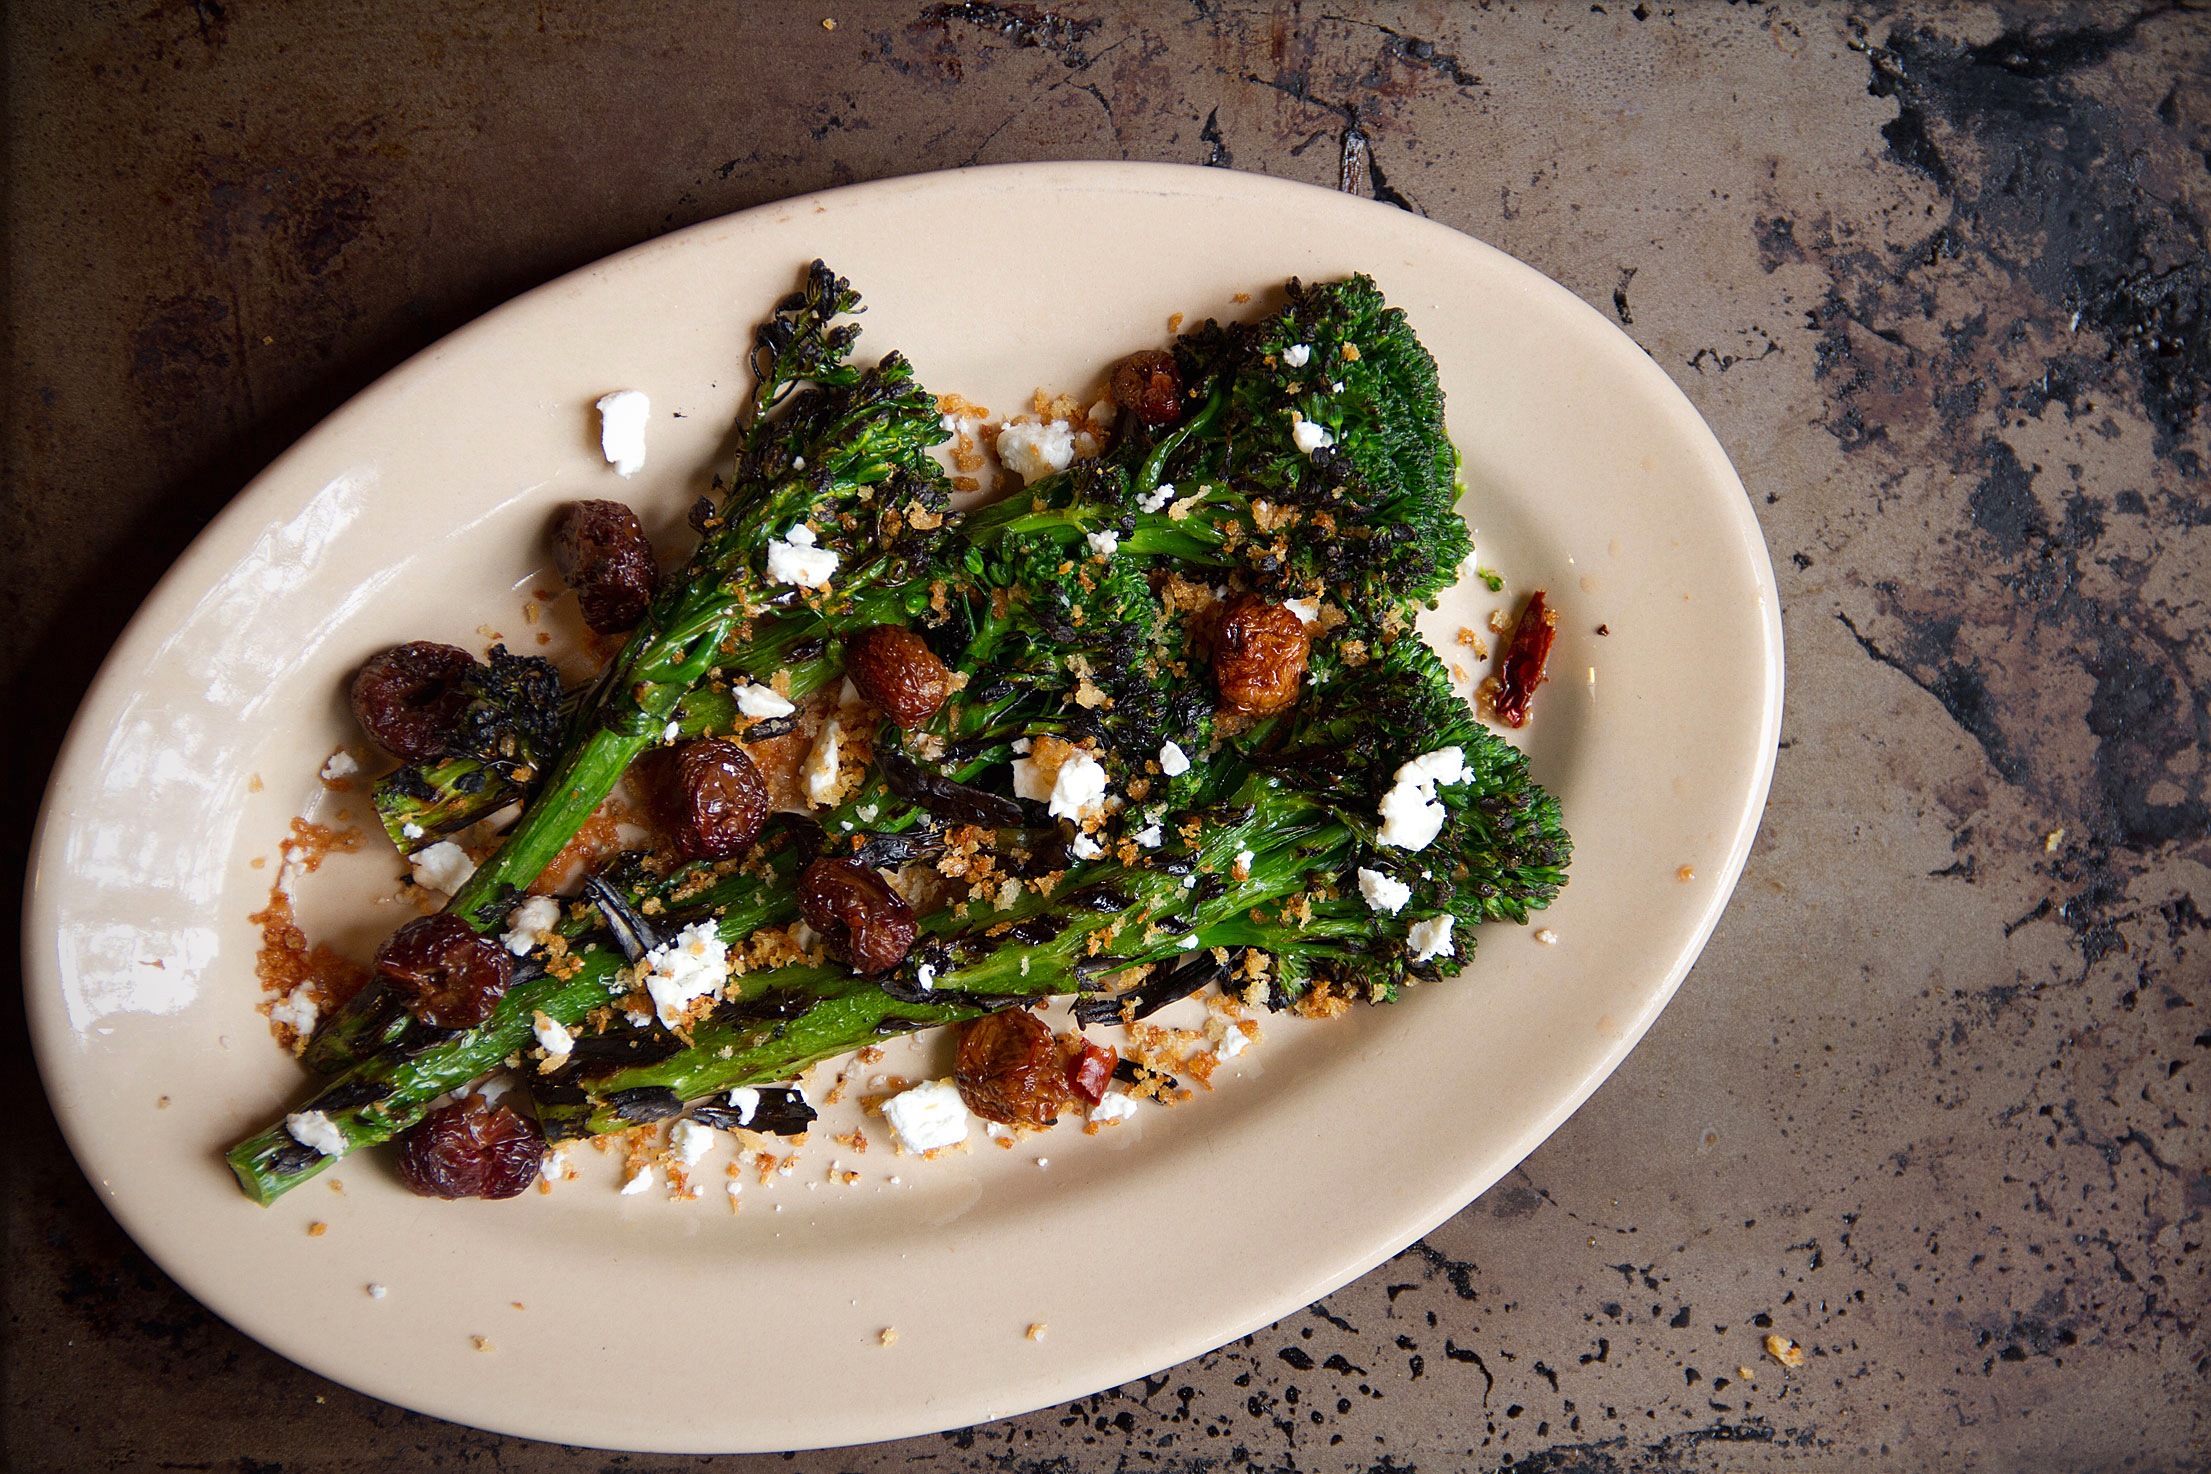 Grilled Broccolini with Dried Cherries and Chile